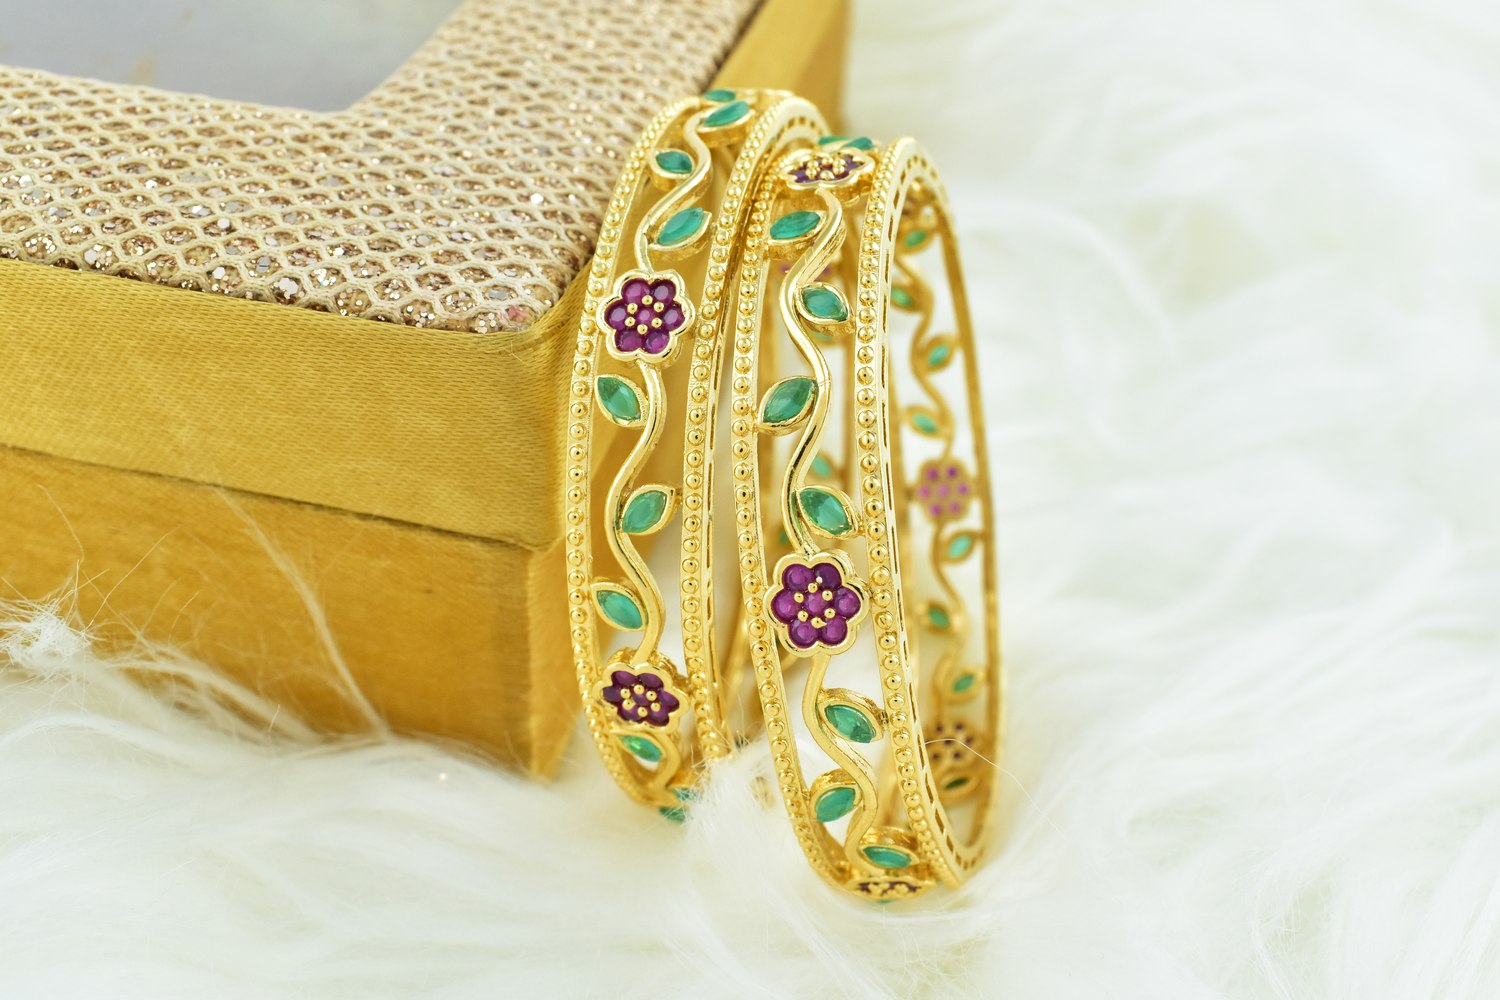 Special discounted set of 2 bangles